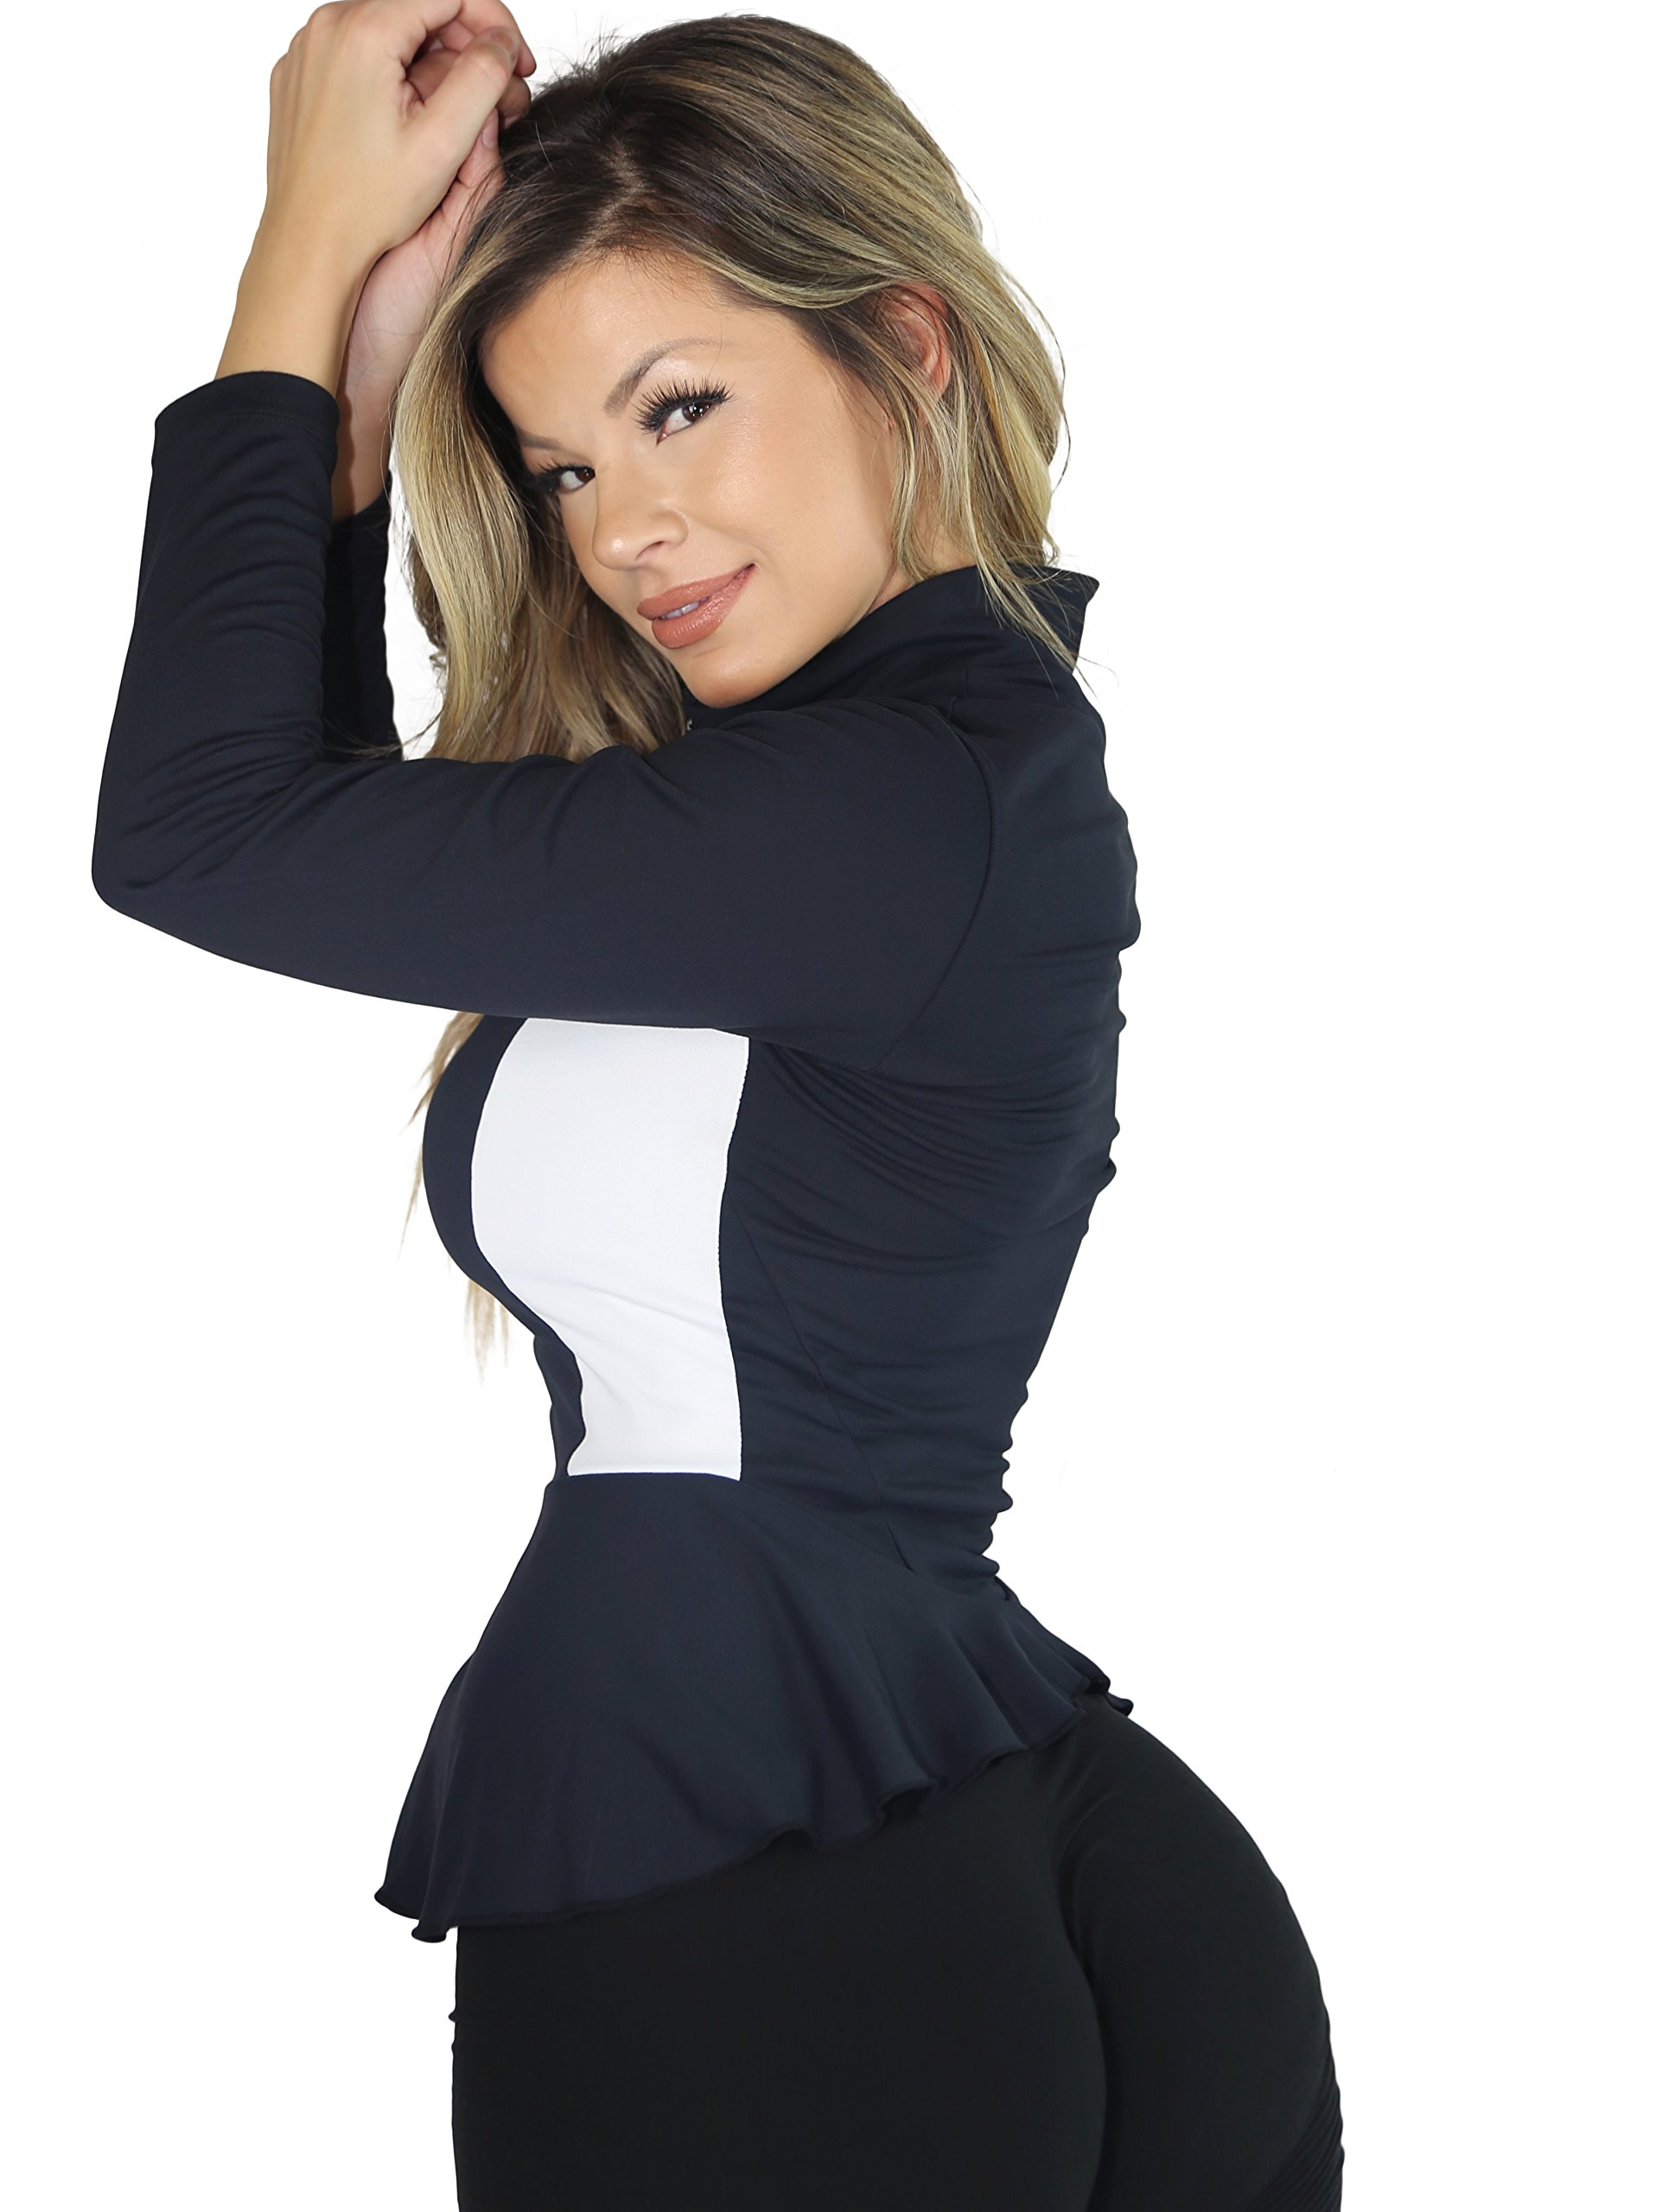 AB Butter Women's Sexy Hourglass Peplum Jacket for Fitness Gym Workout Training Running Yoga - Black by AB Butter